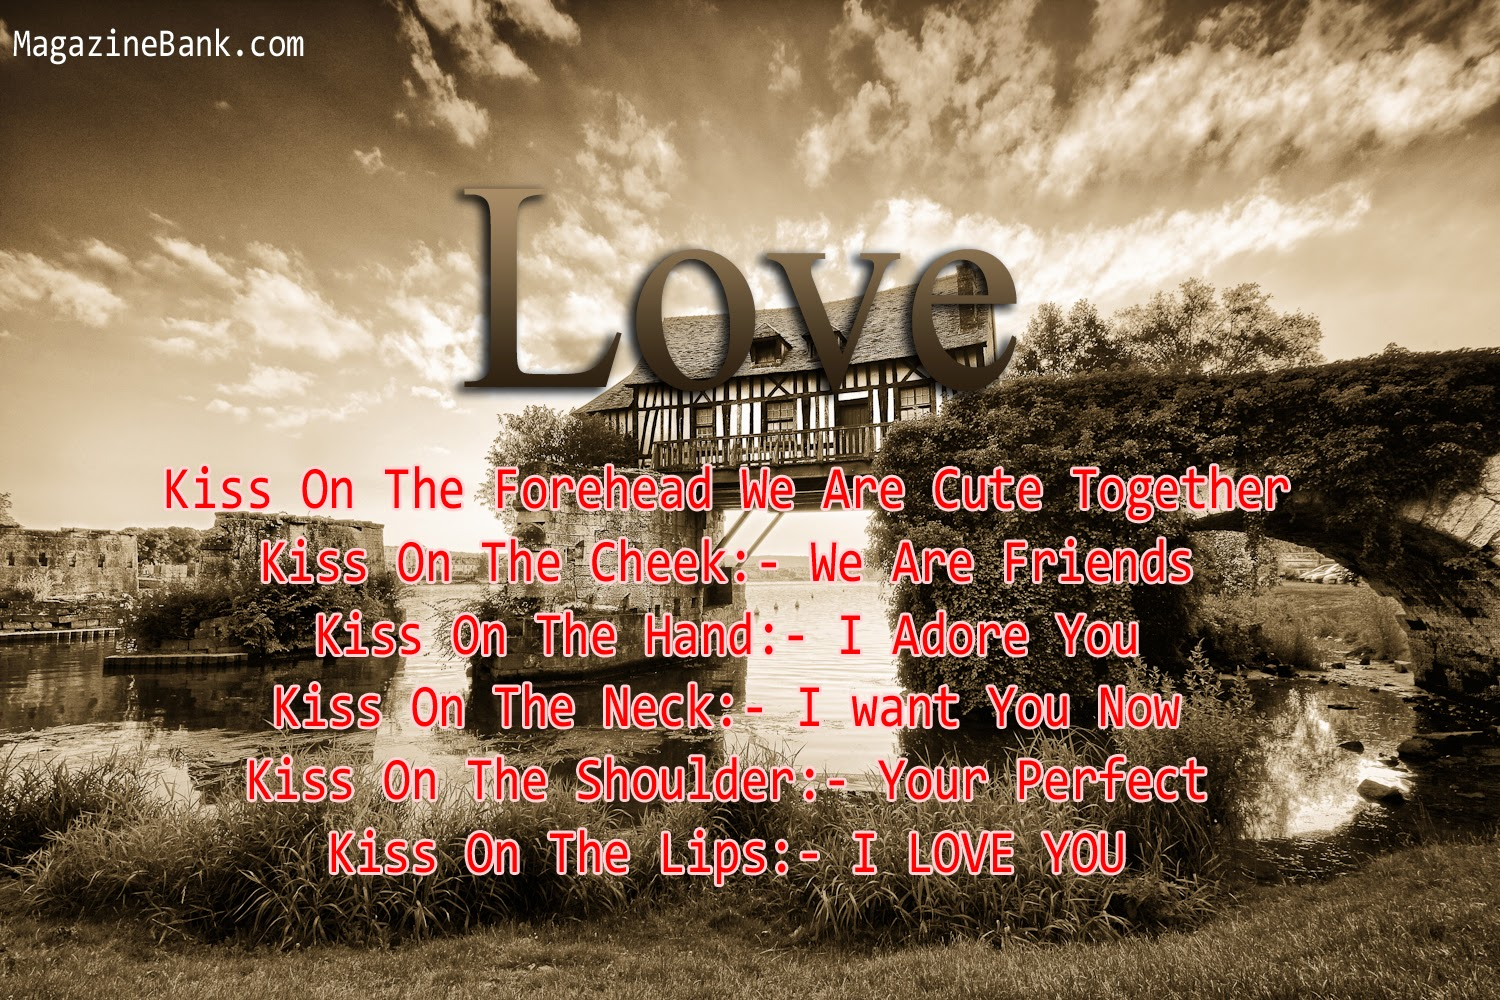 Sad Love Quotes For Her From The Heart. QuotesGram